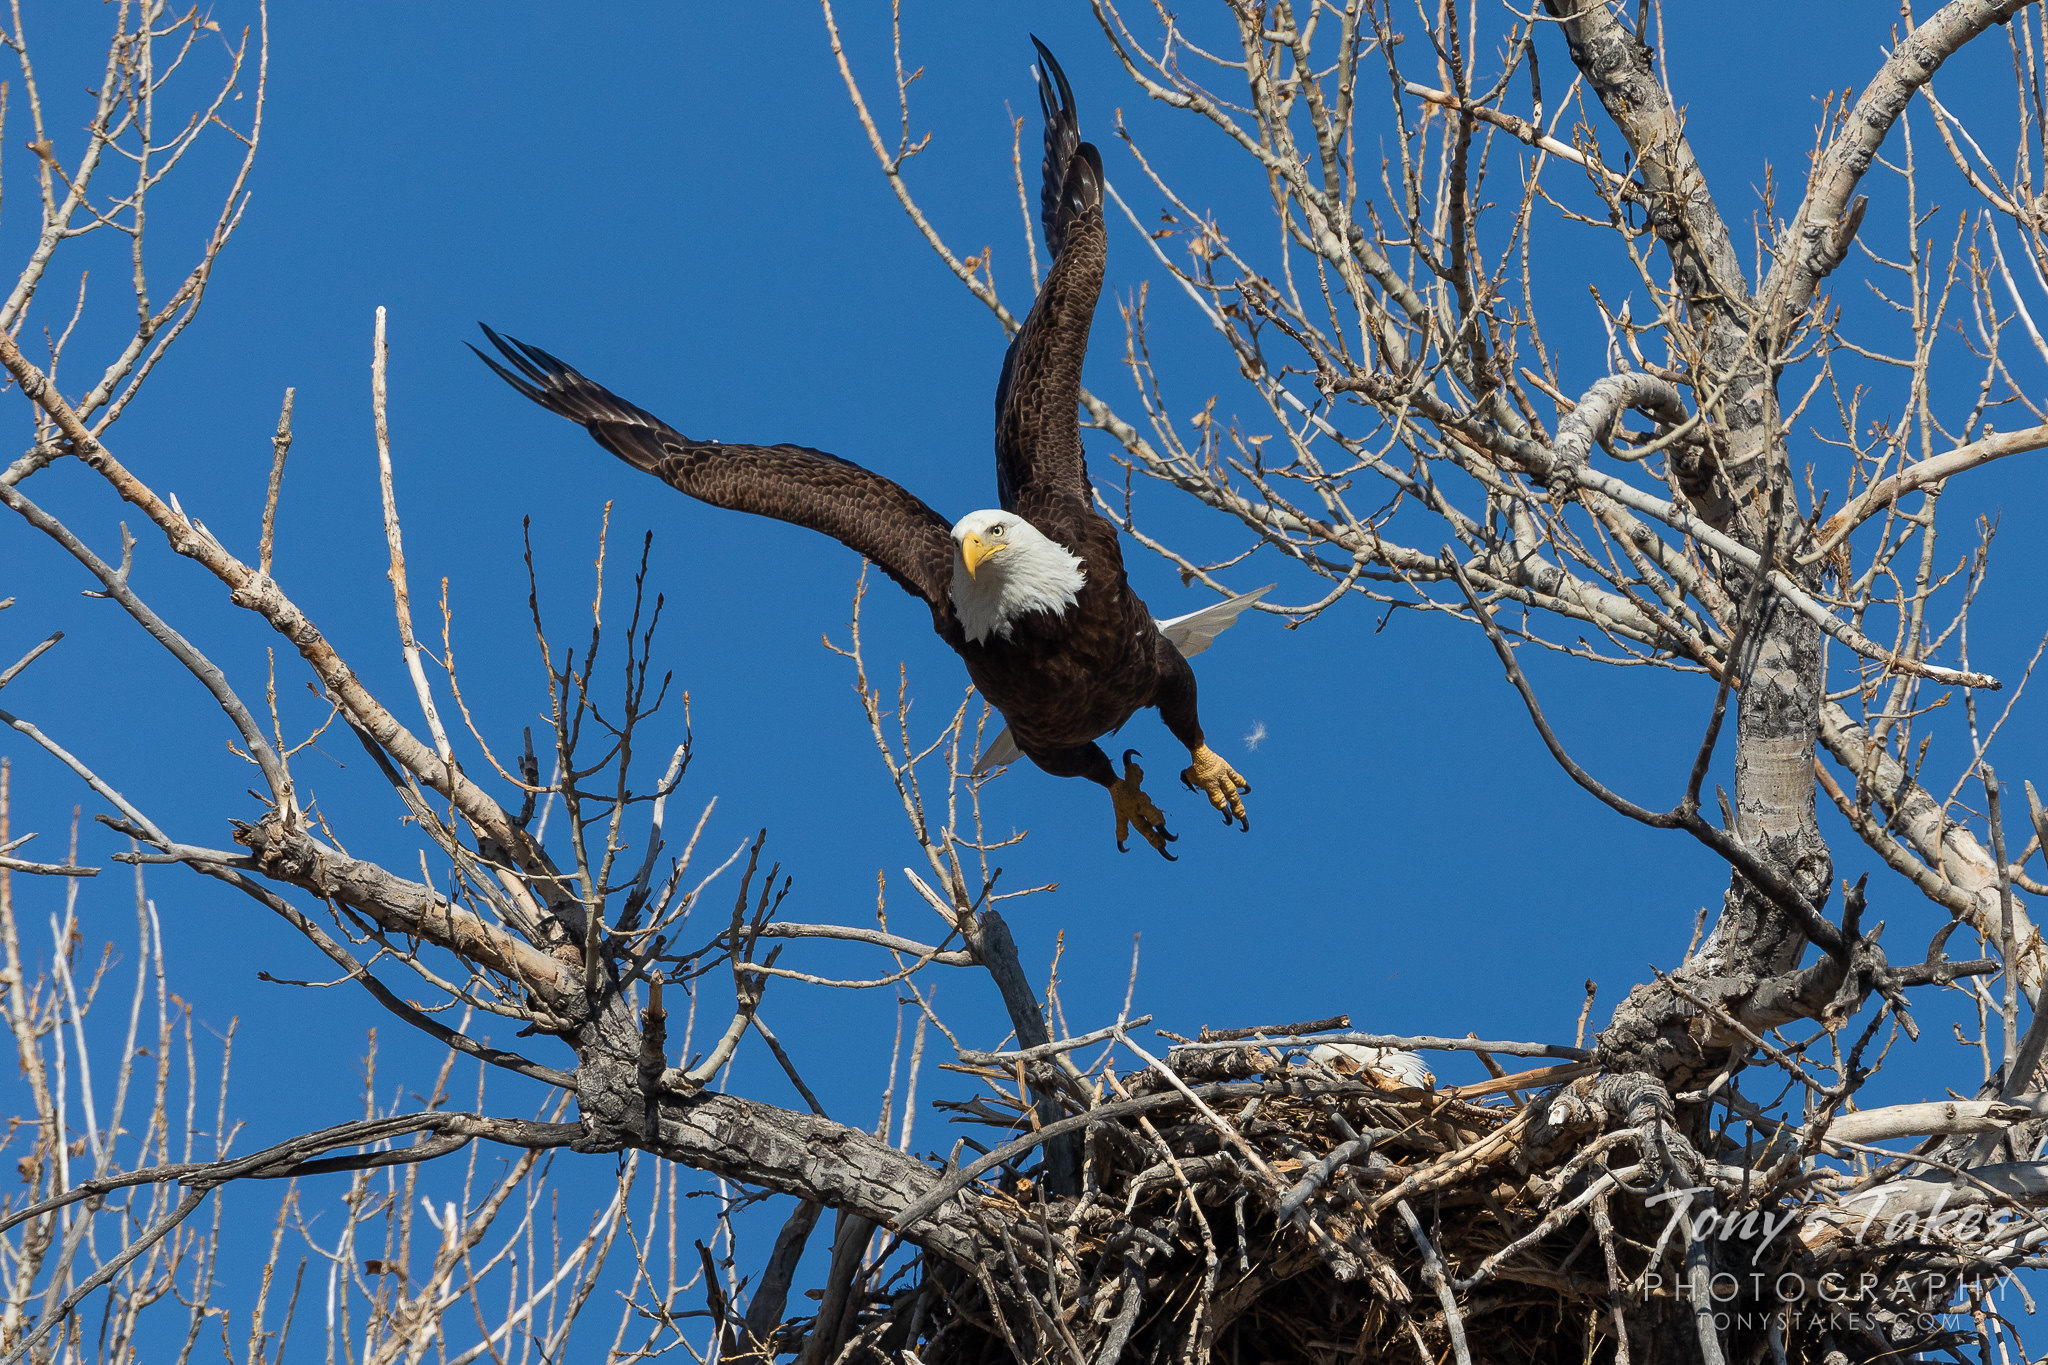 A male bald eagle launches into the air from its nest along the South Platte River. (© Tony's Takes)